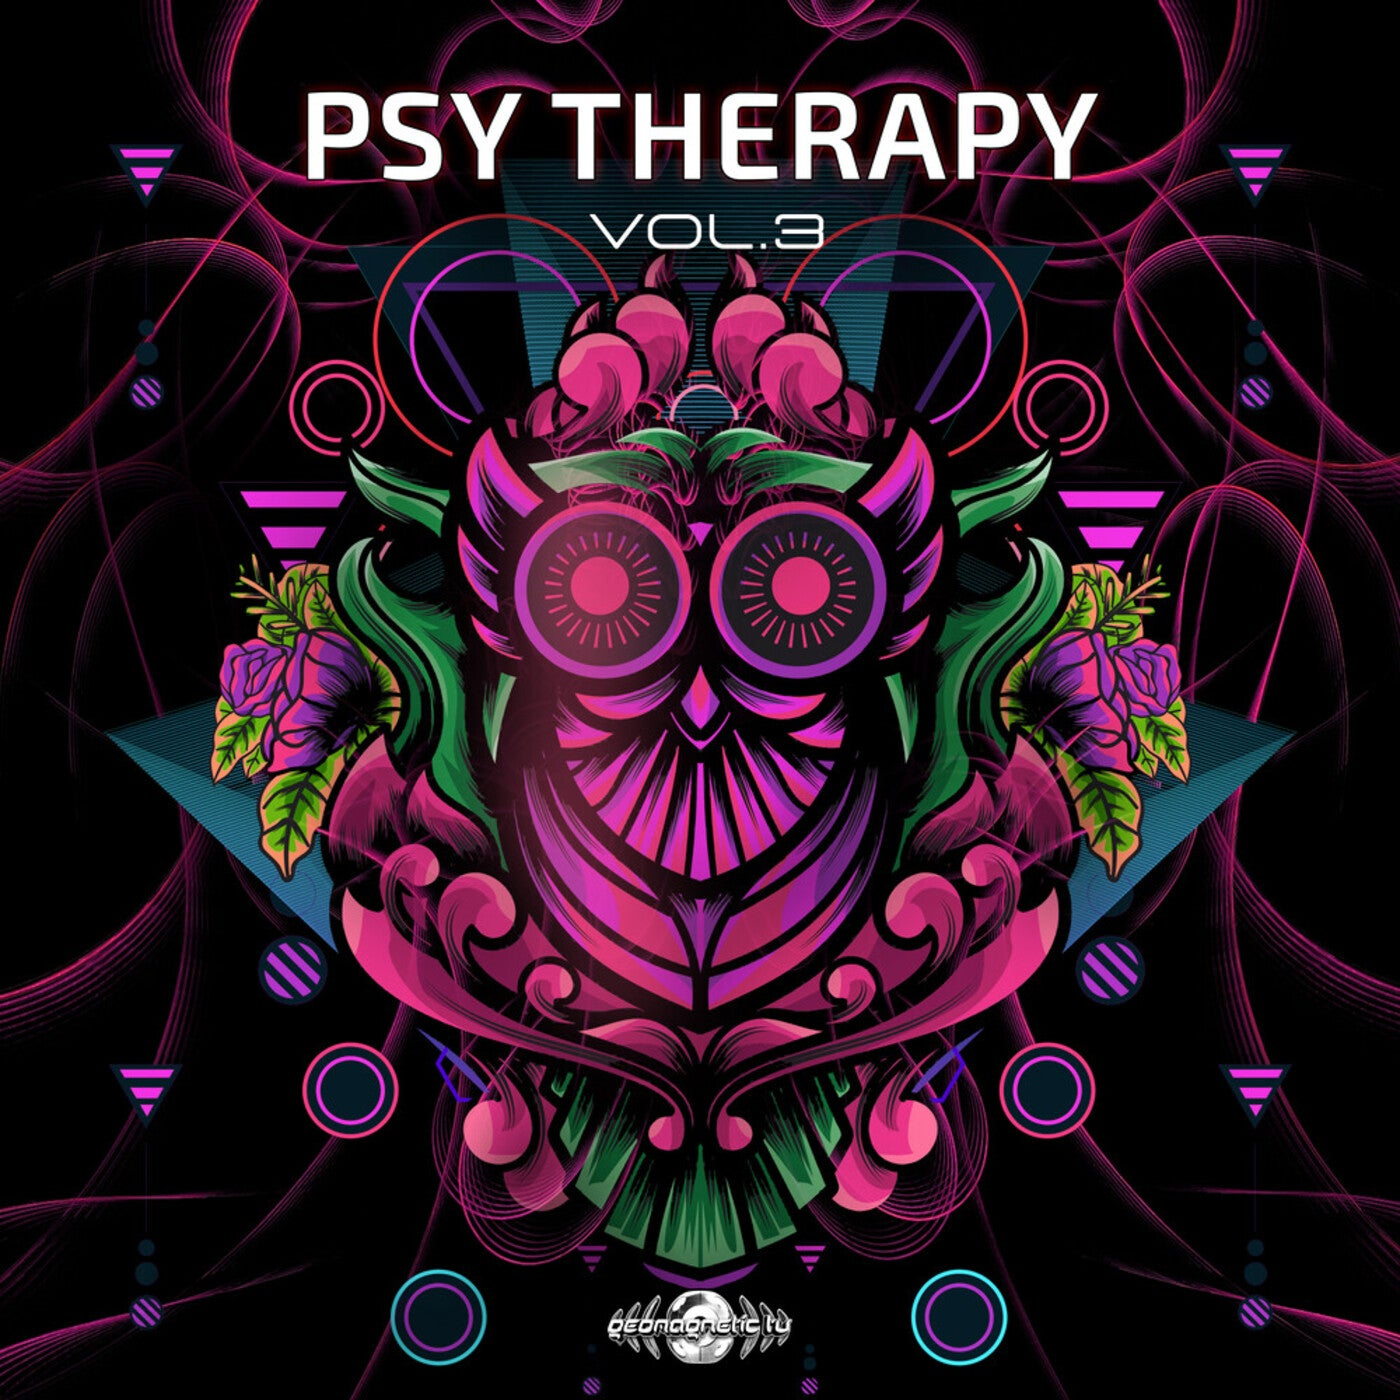 Psy Therapy, Vol. 3